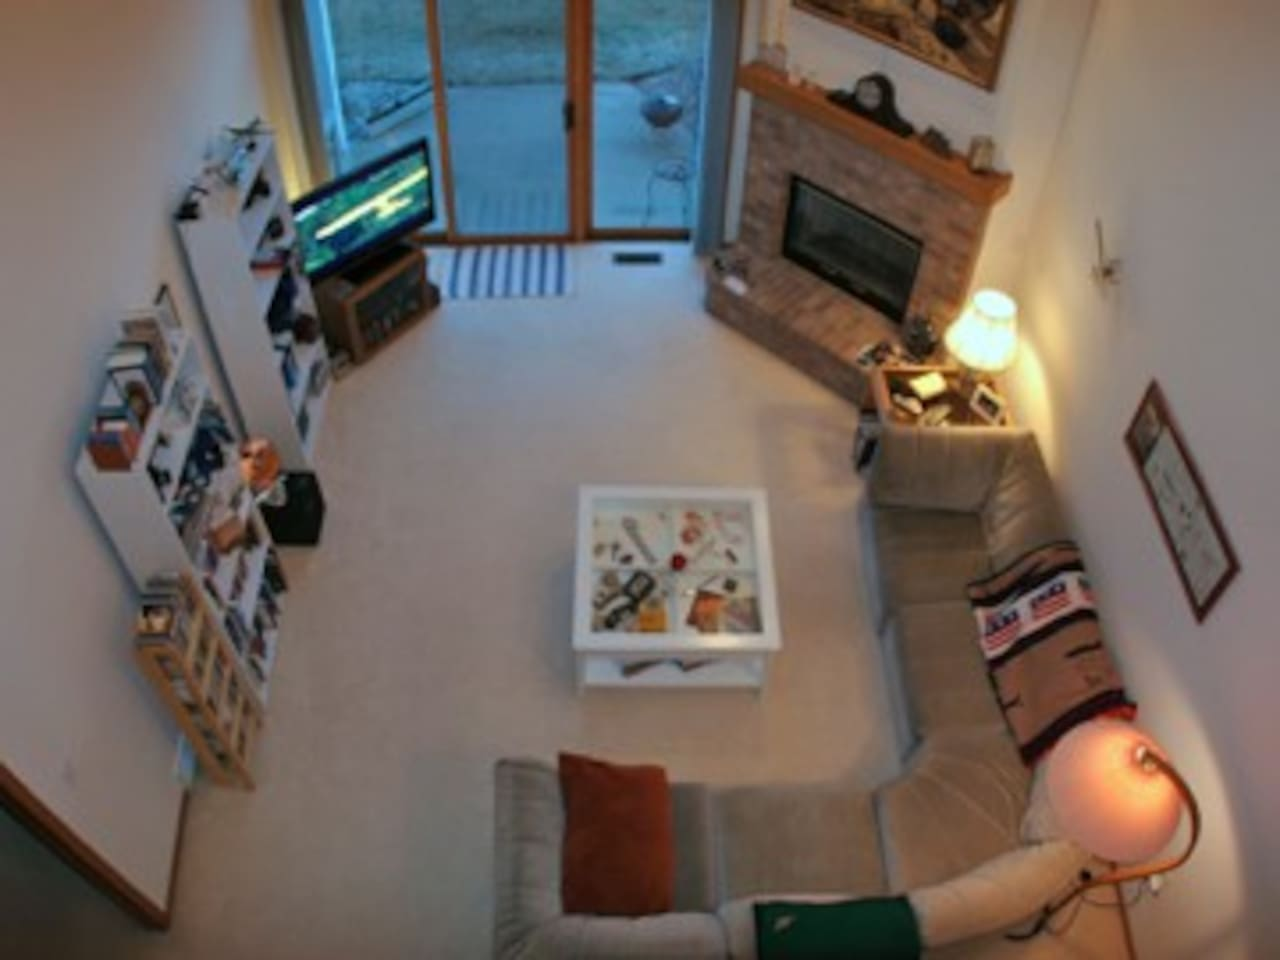 The view of the living room from the loft. The upstairs loft can accommodate a pair of guests on their own bedding.